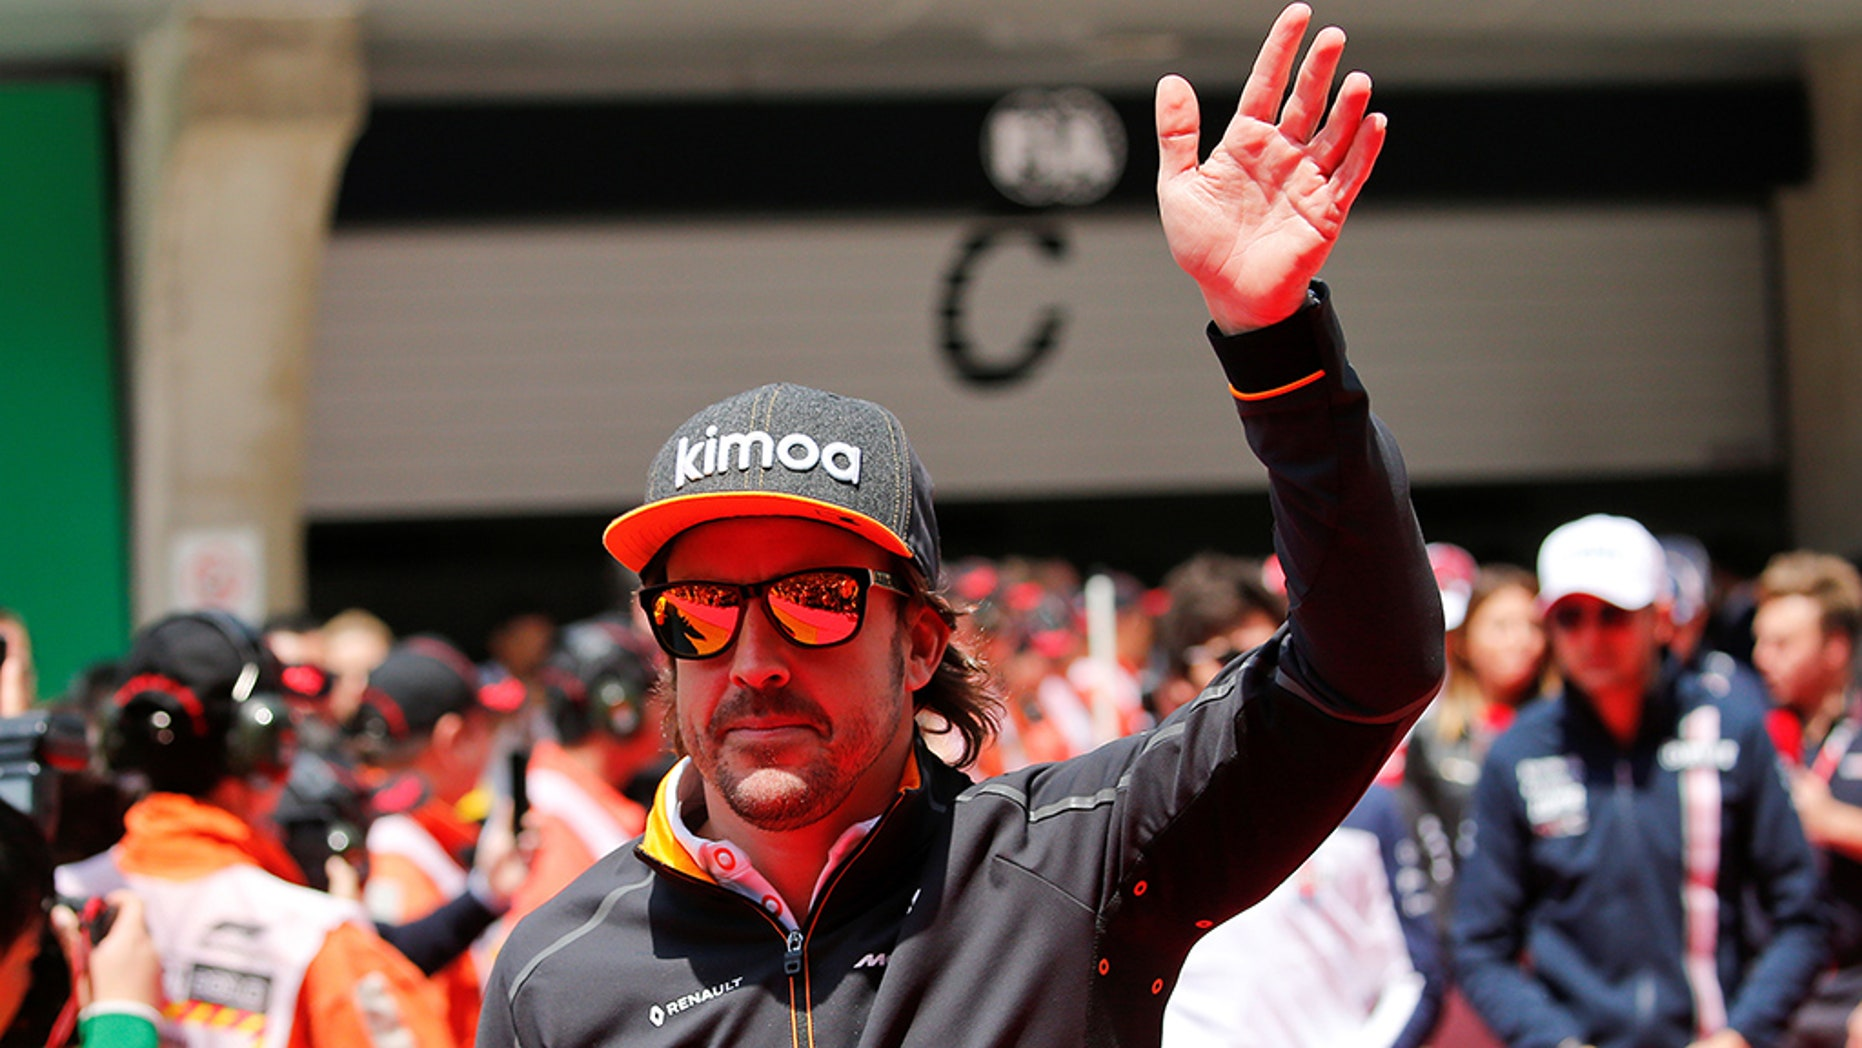 Formula One - F1 - Chinese Grand Prix - Shanghai, China - April 15, 2018 - McLaren's Fernando Alonso before the race. REUTERS/Aly Song - RC16F96CCA30